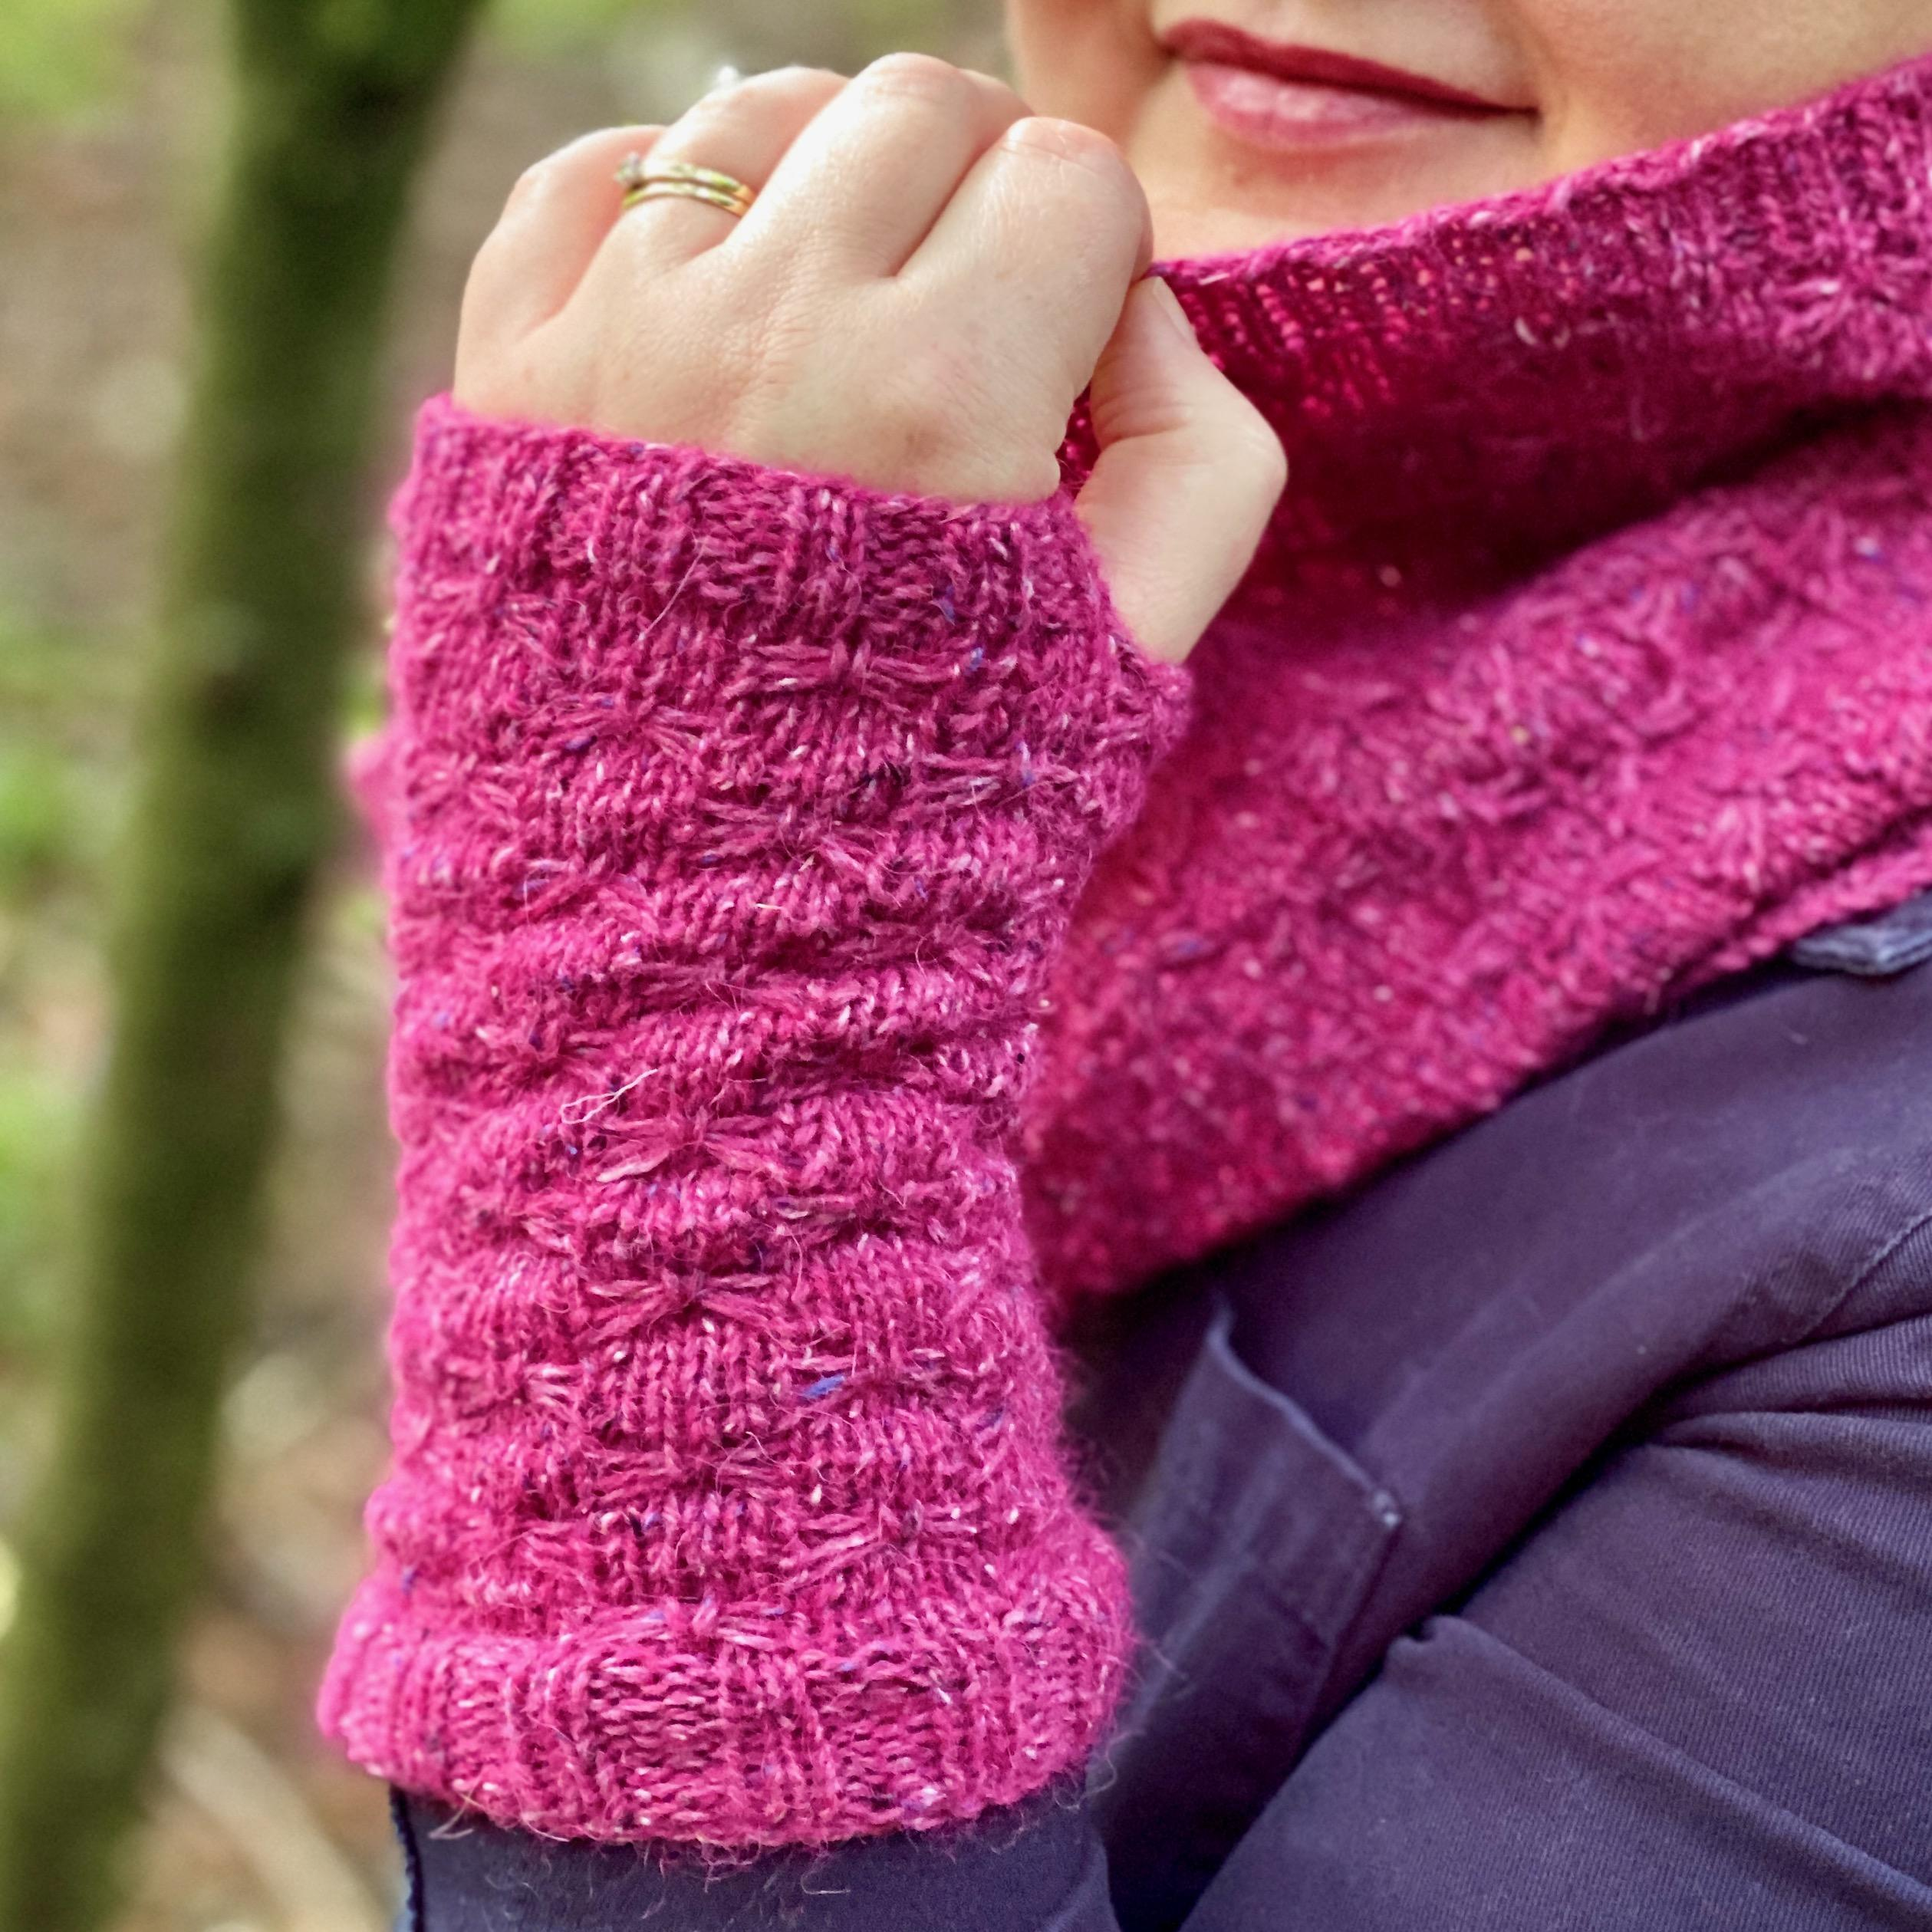 upright hand and forearm wearing pink knitted cuff